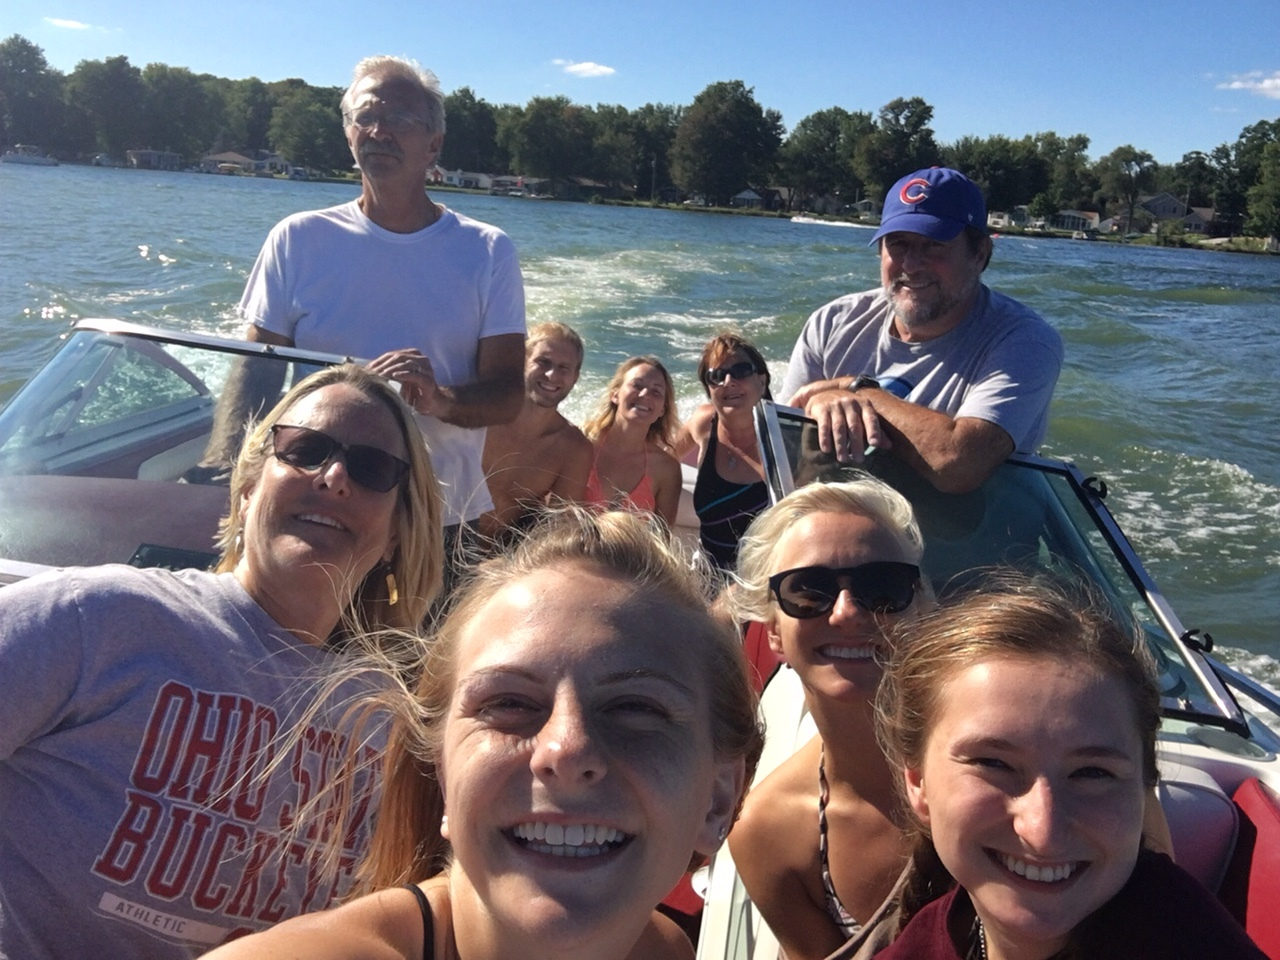 Some good family time on the lake.